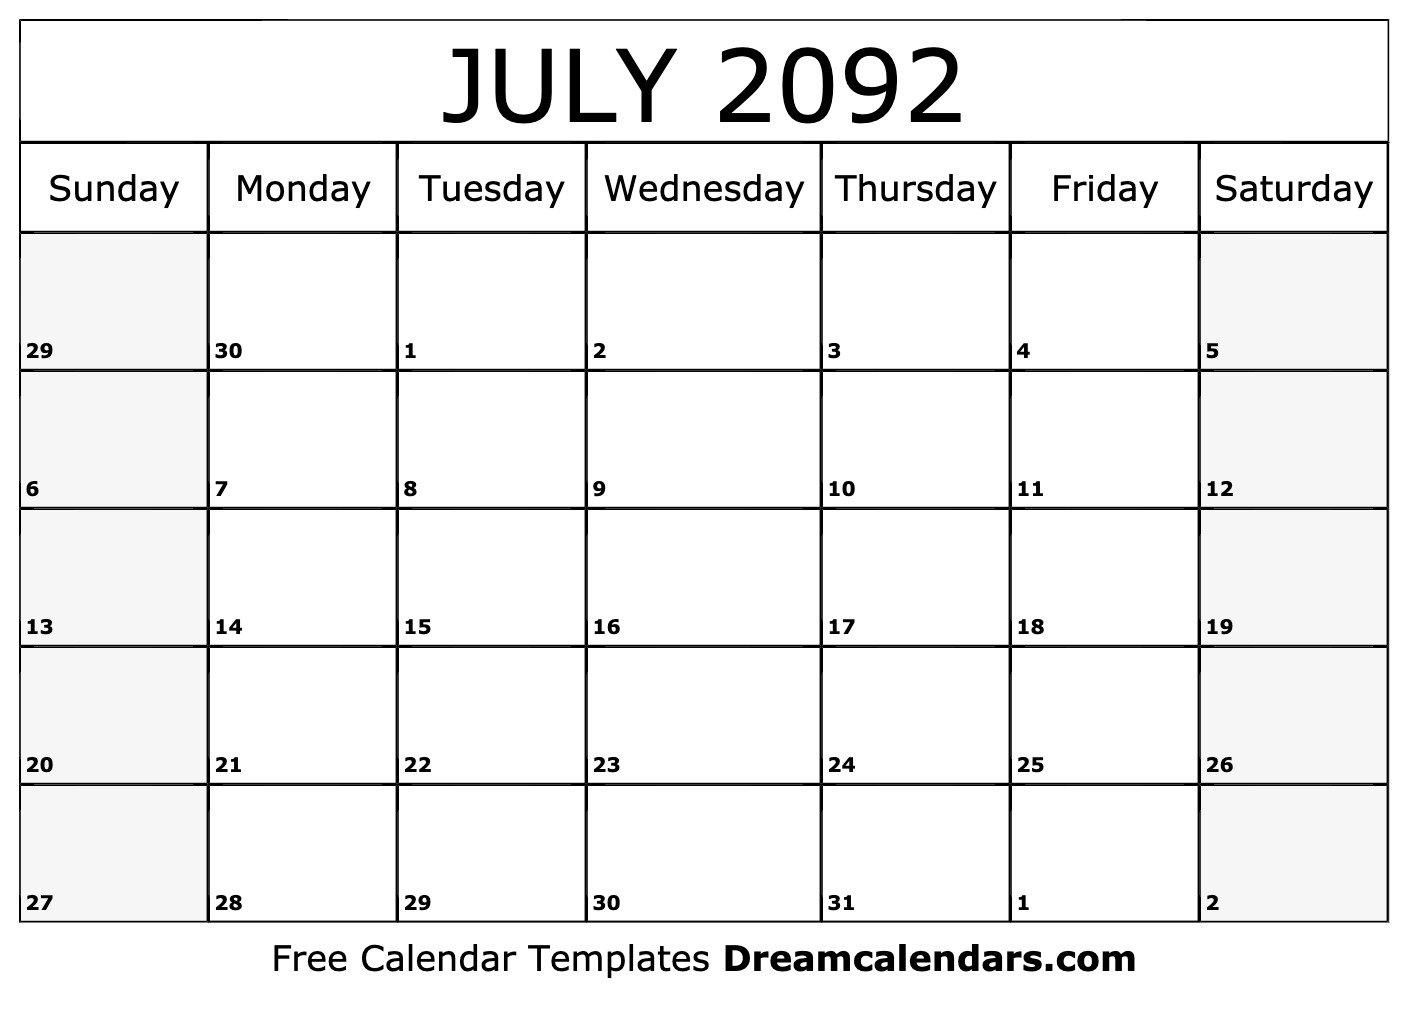 graphic relating to July Calendar Printable titled Printable July 2092 Calendar